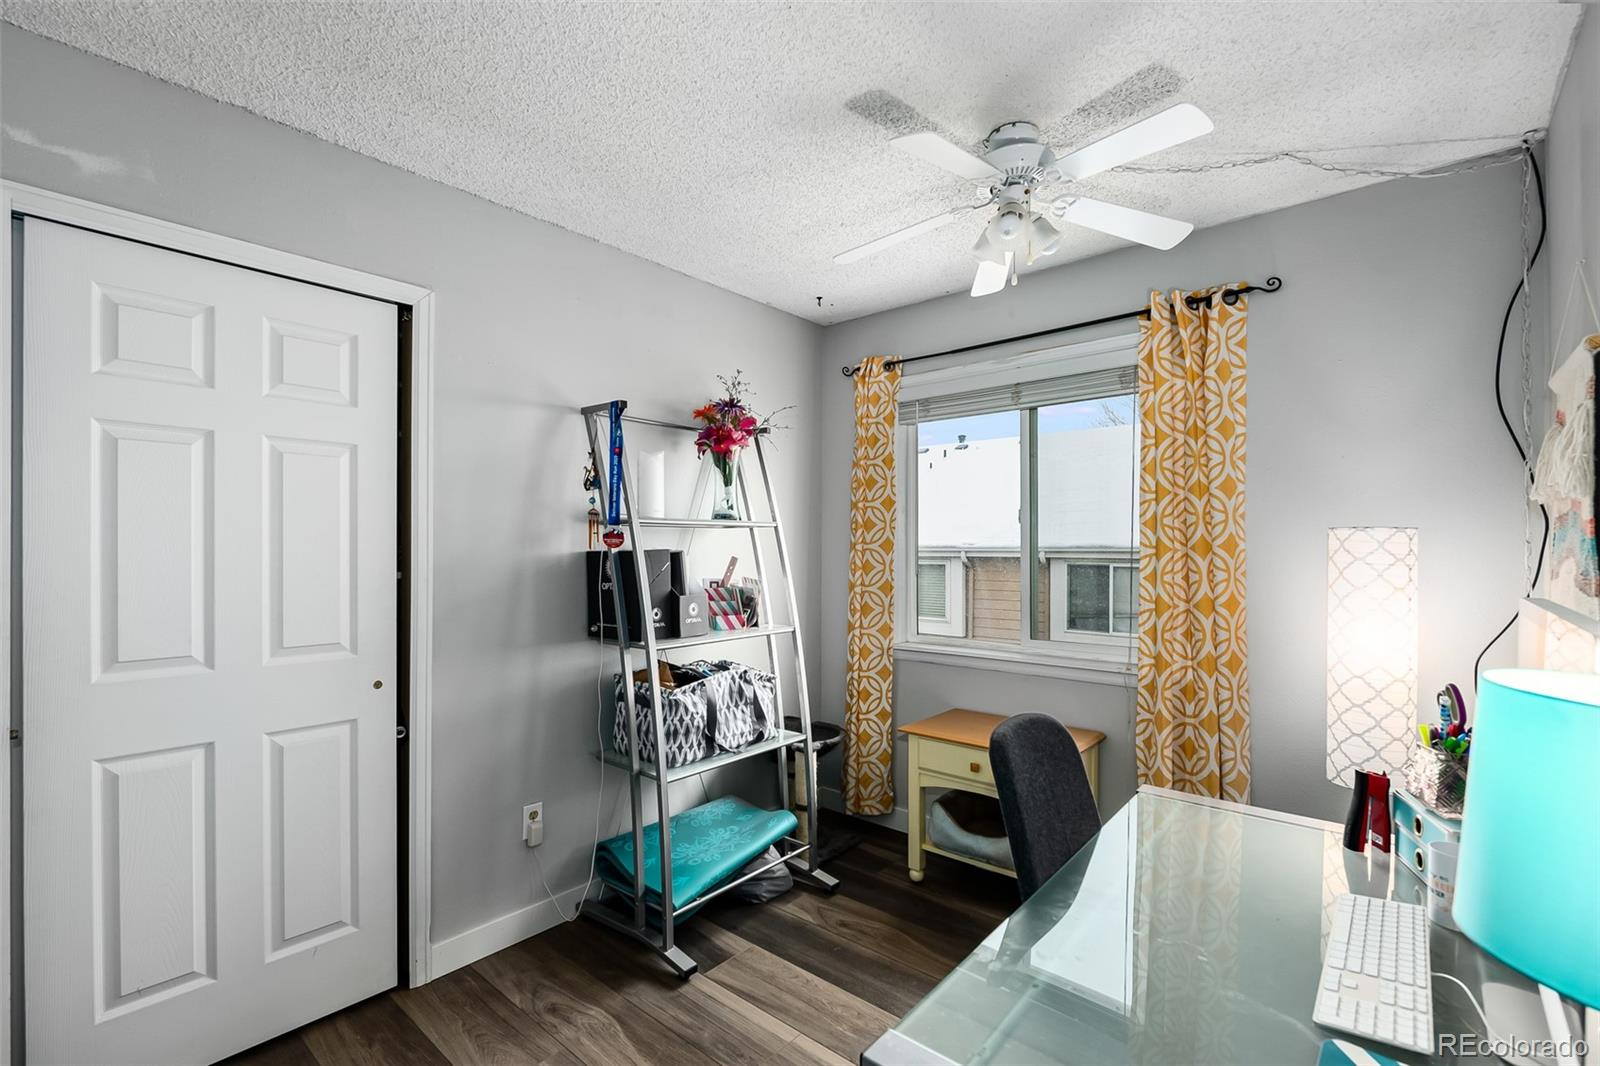 MLS# 2133621 - 20 - 2220 E 103rd Place, Thornton, CO 80229